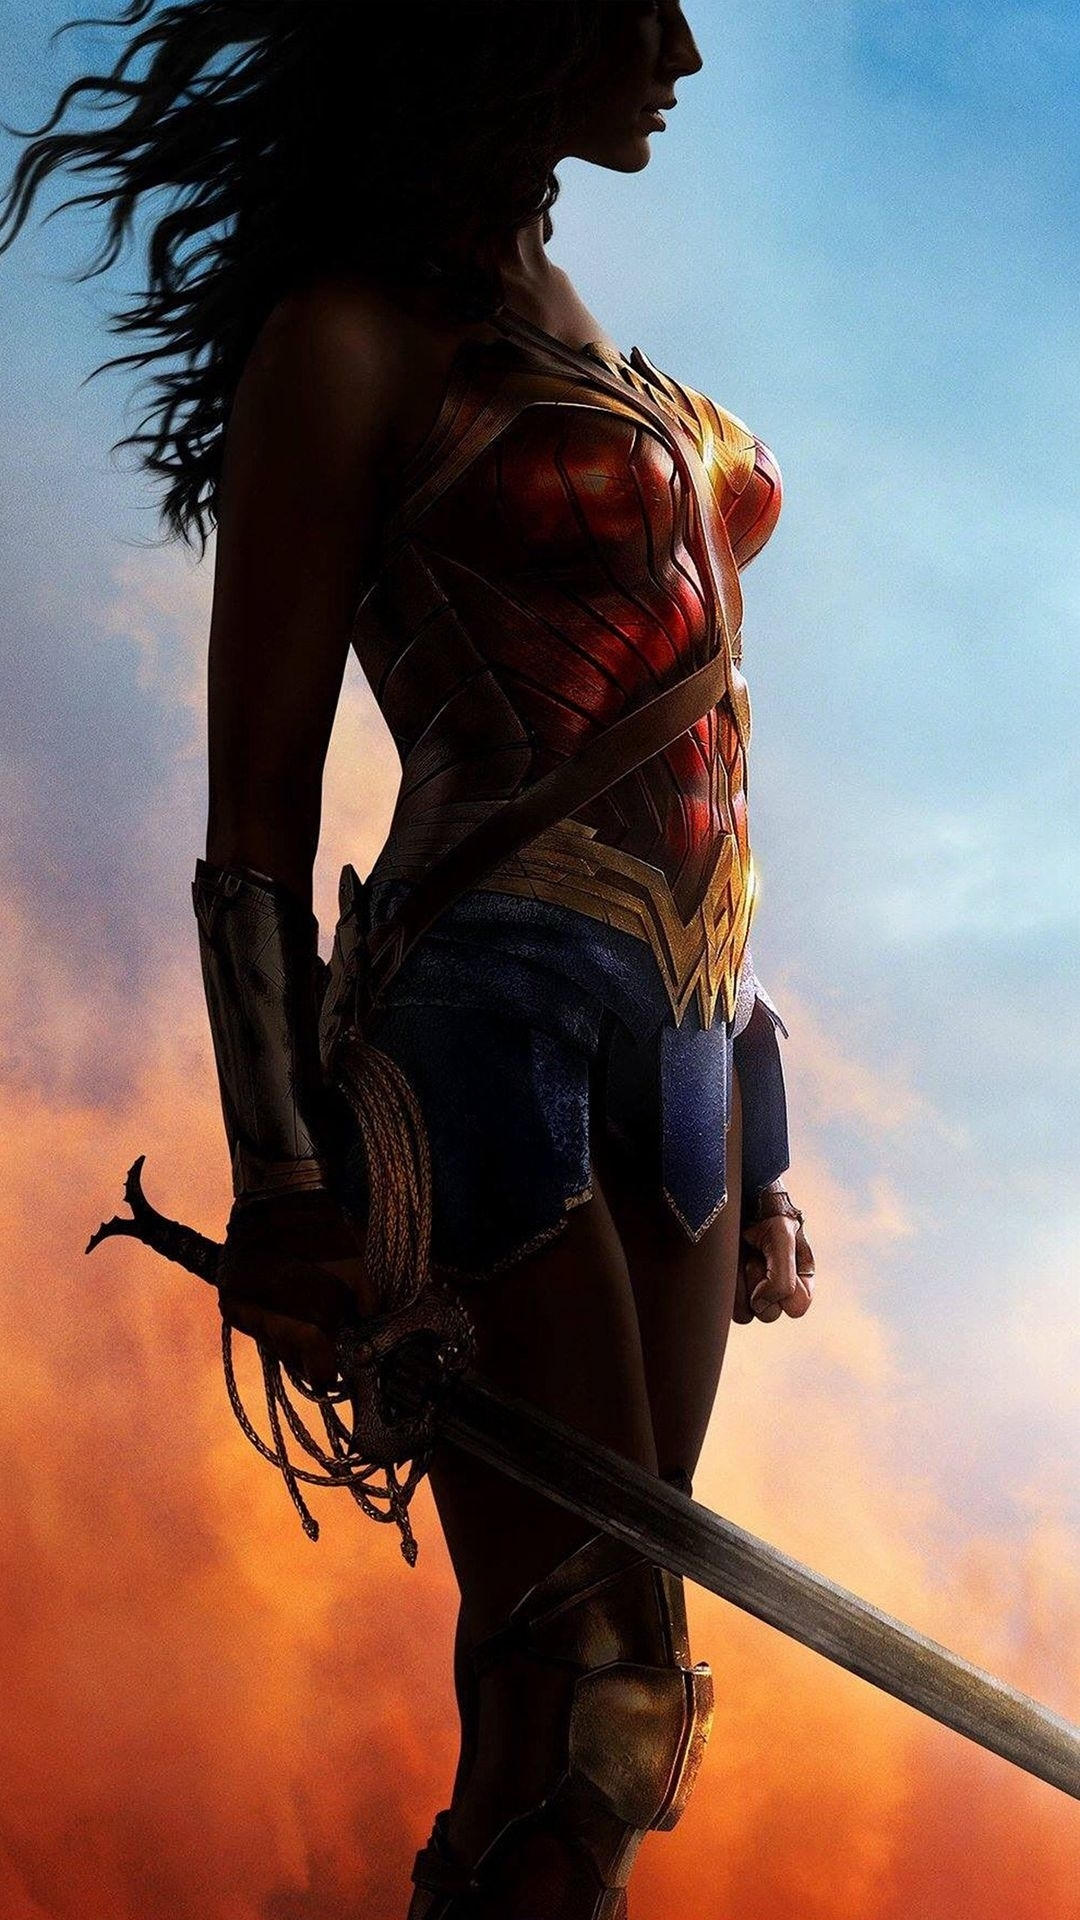 wonder woman art poster hero art illustration iphone 6 wallpaper